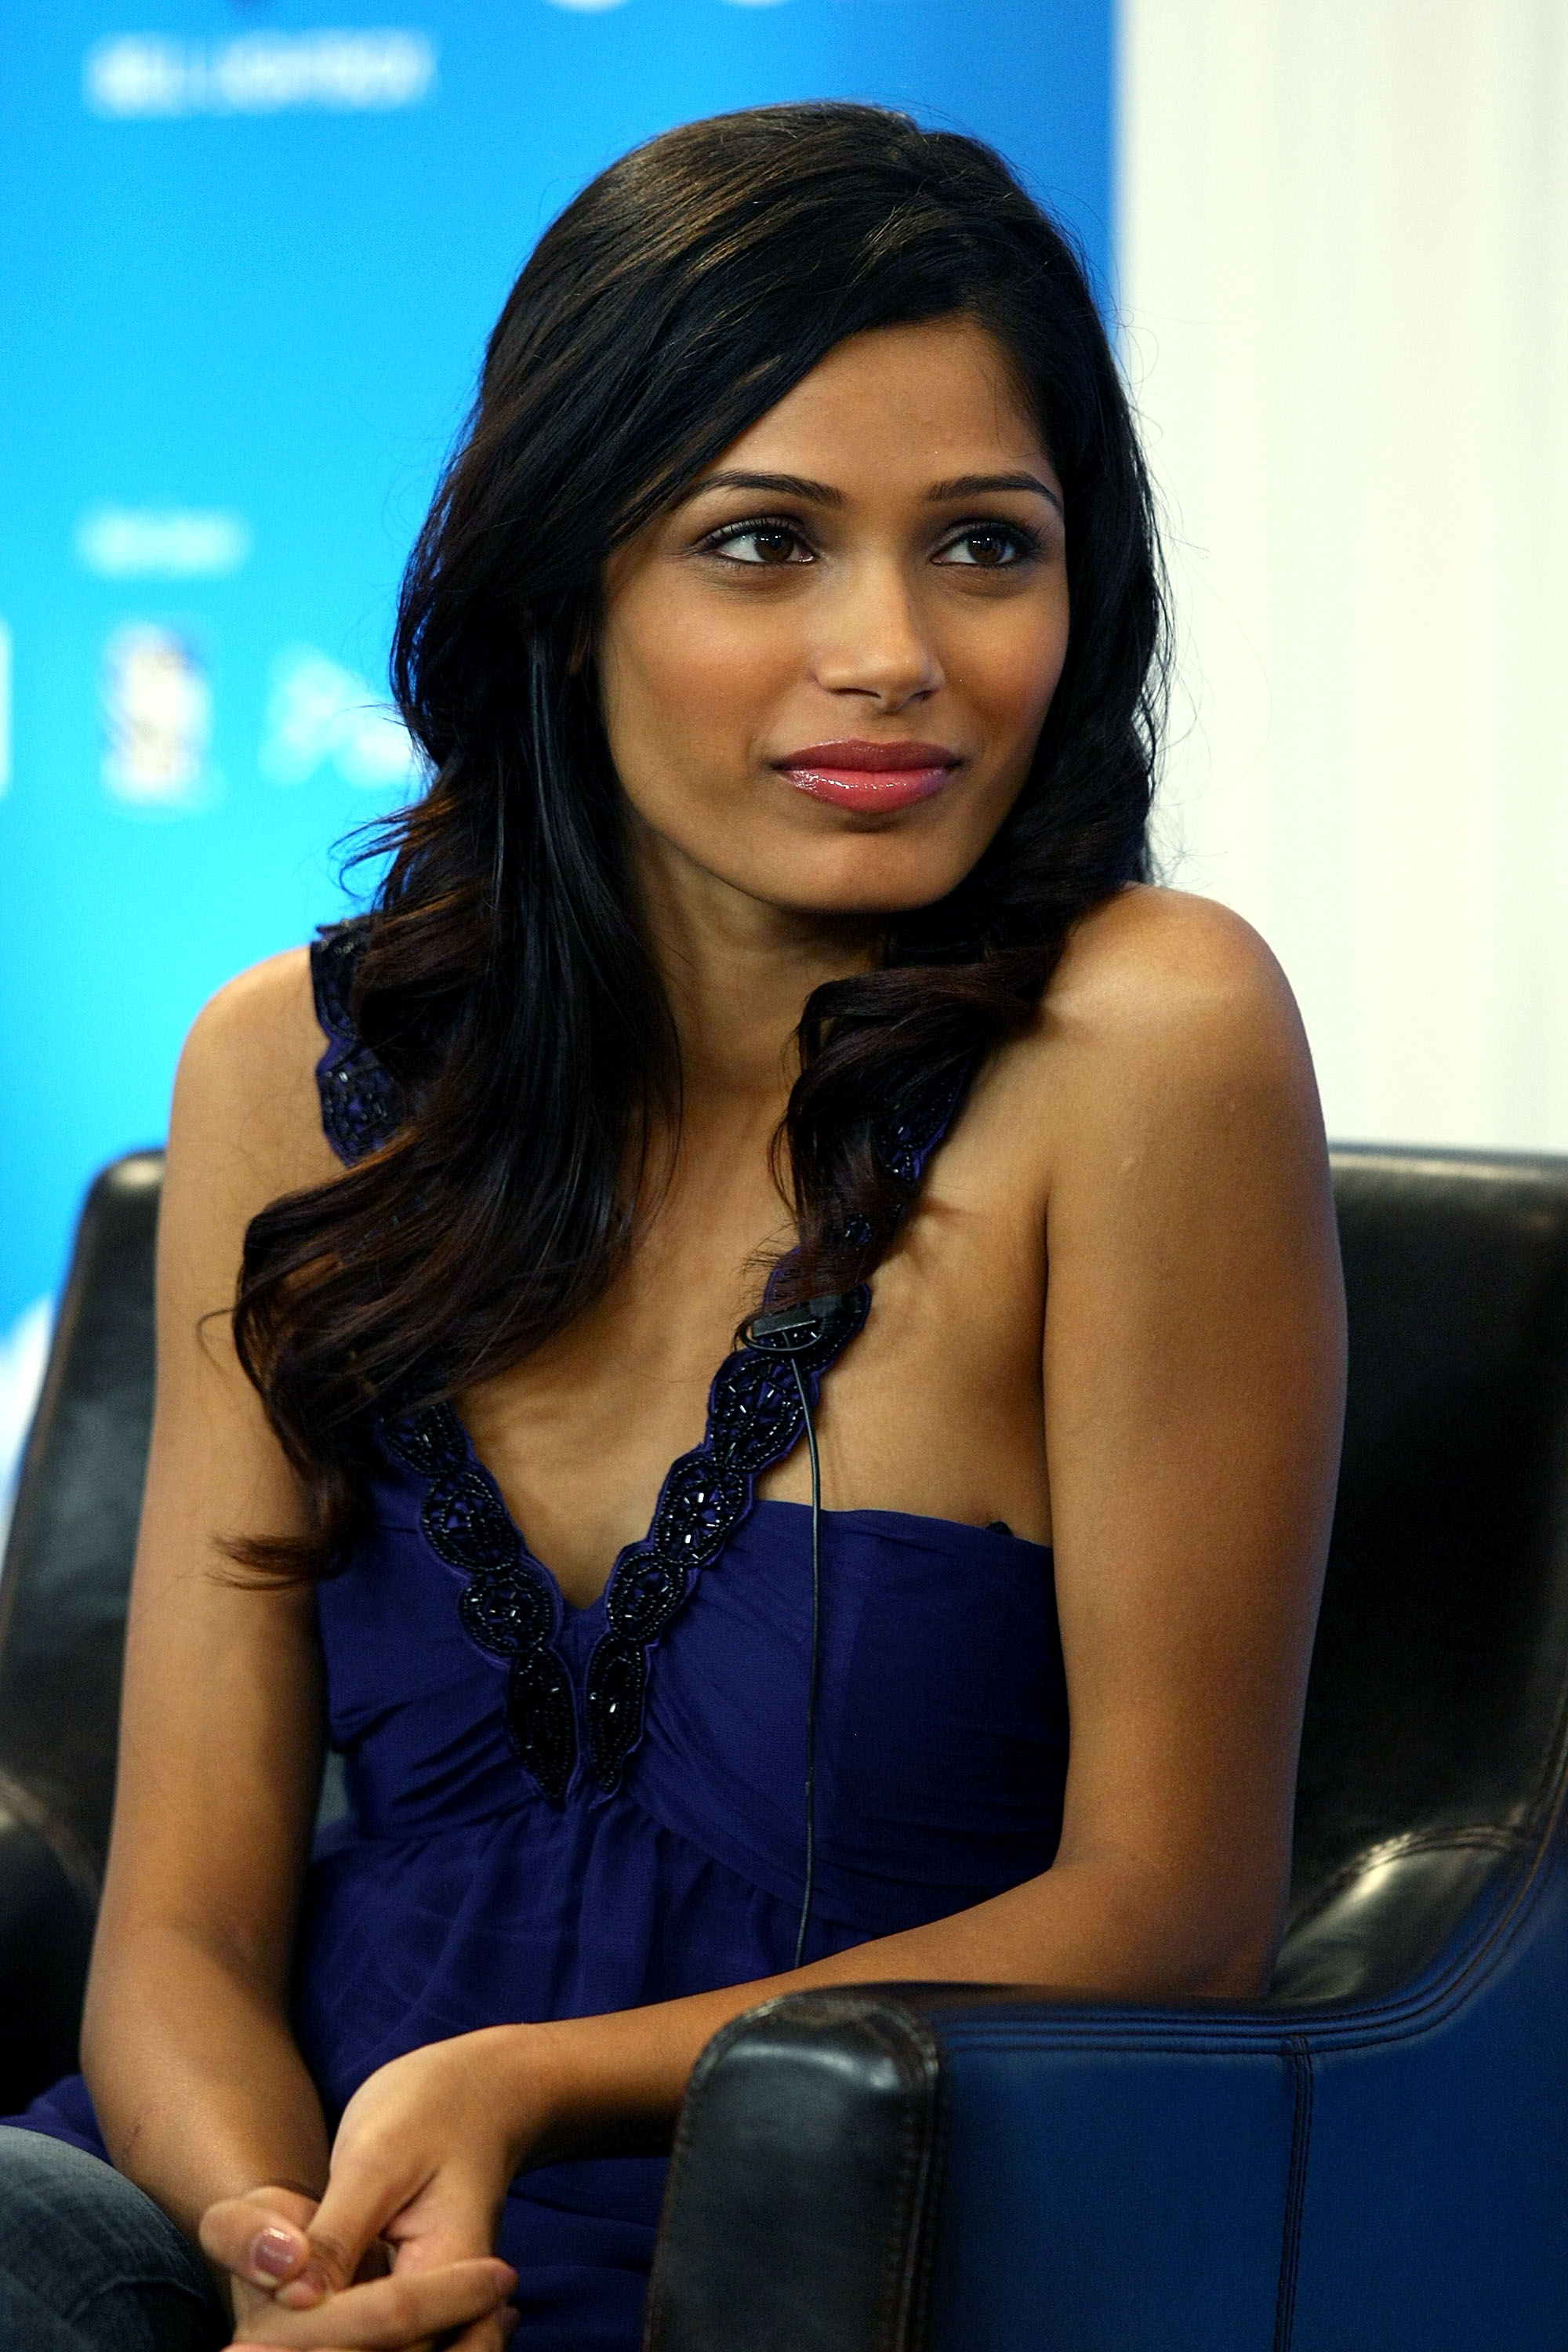 Freida Pinto photo 7 of 729 pics, wallpaper - photo ... Freida Pinto